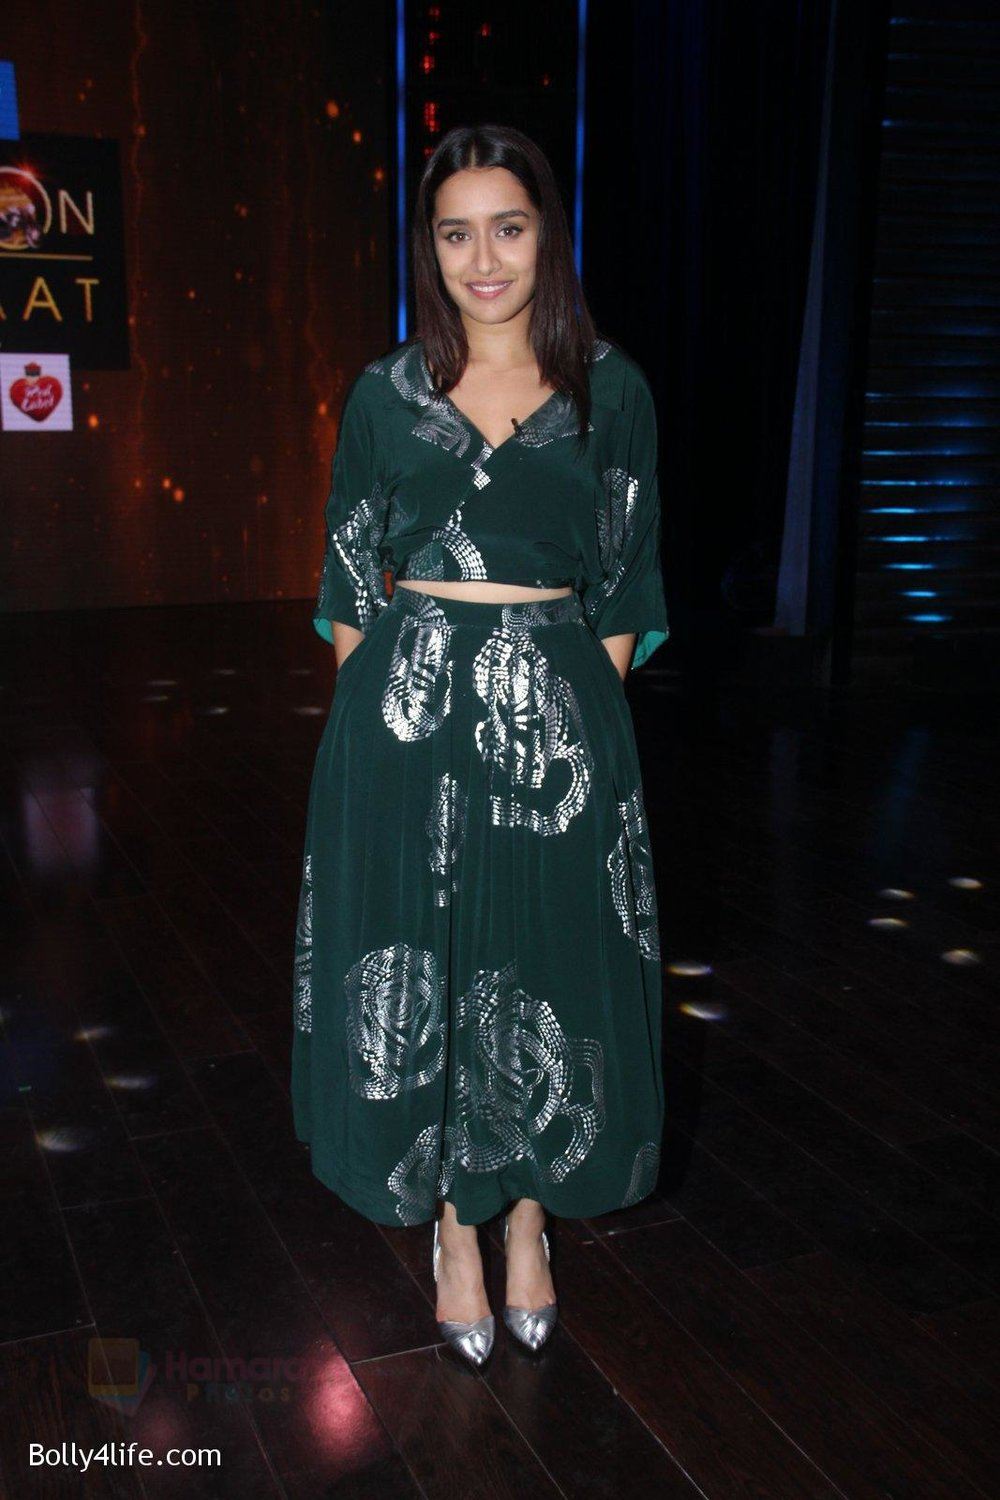 Shraddha-Kapoor-promote-Rock-On-2-on-the-sets-of-Yaaron-Ki-Baraat-Show-on-Zee-Tv-on-23rd-Oct-2016-54.jpg